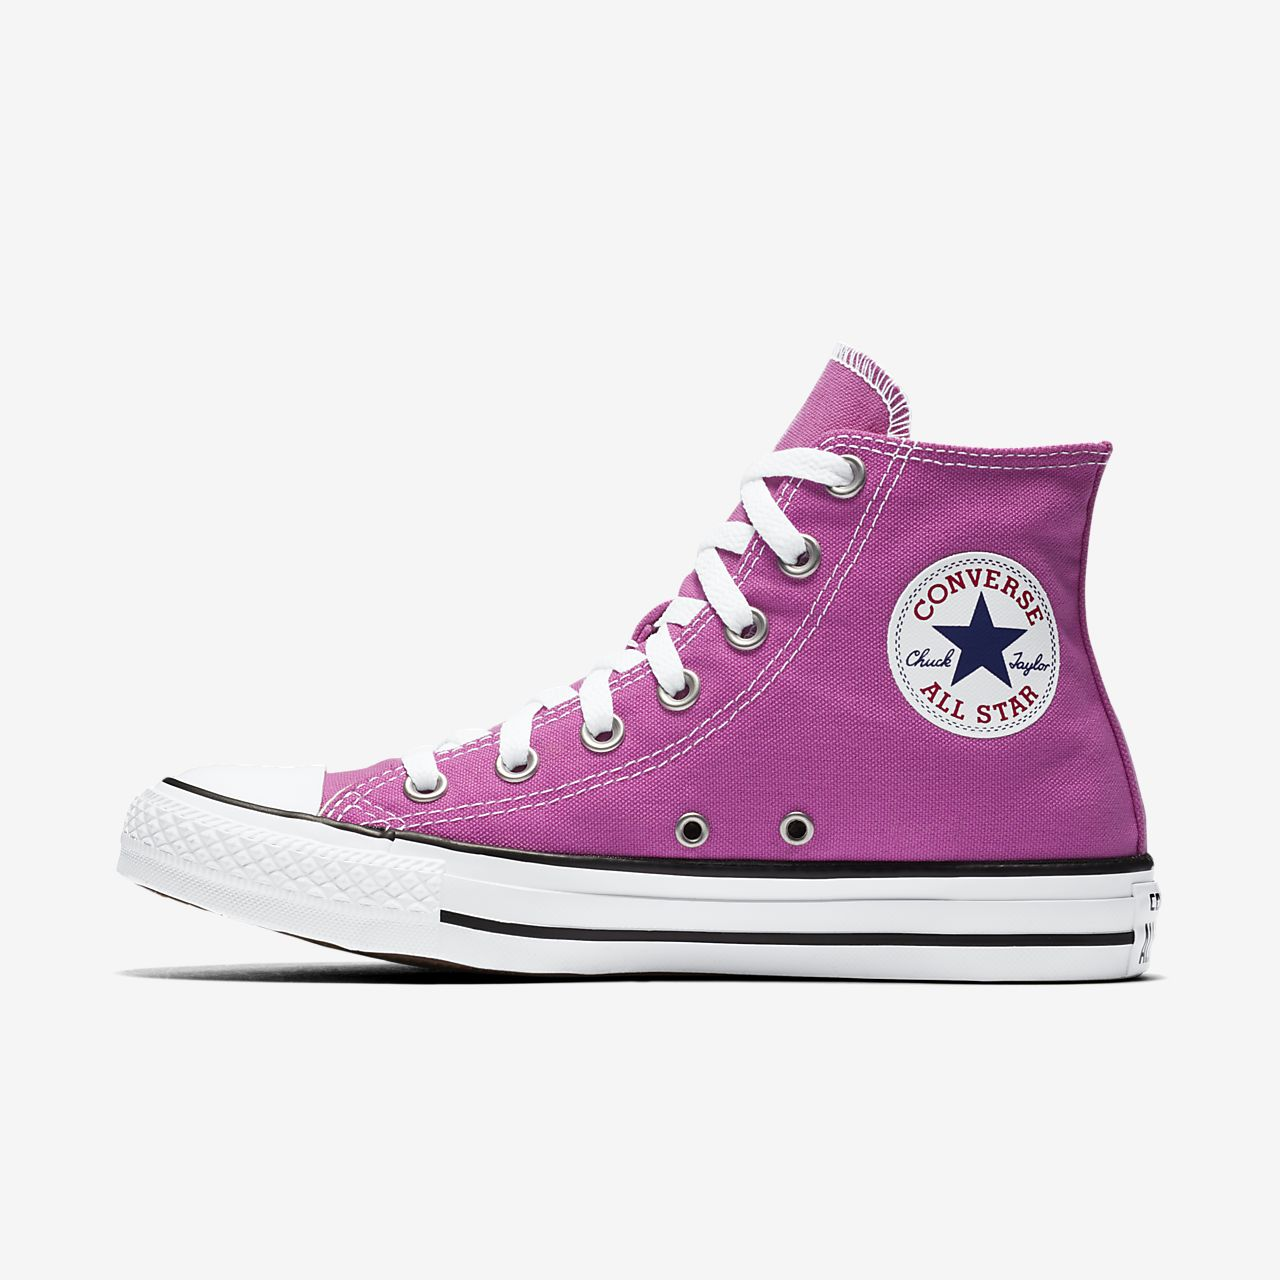 Converse Chuck Taylor All Star Seasonal High Top Unisex Shoe